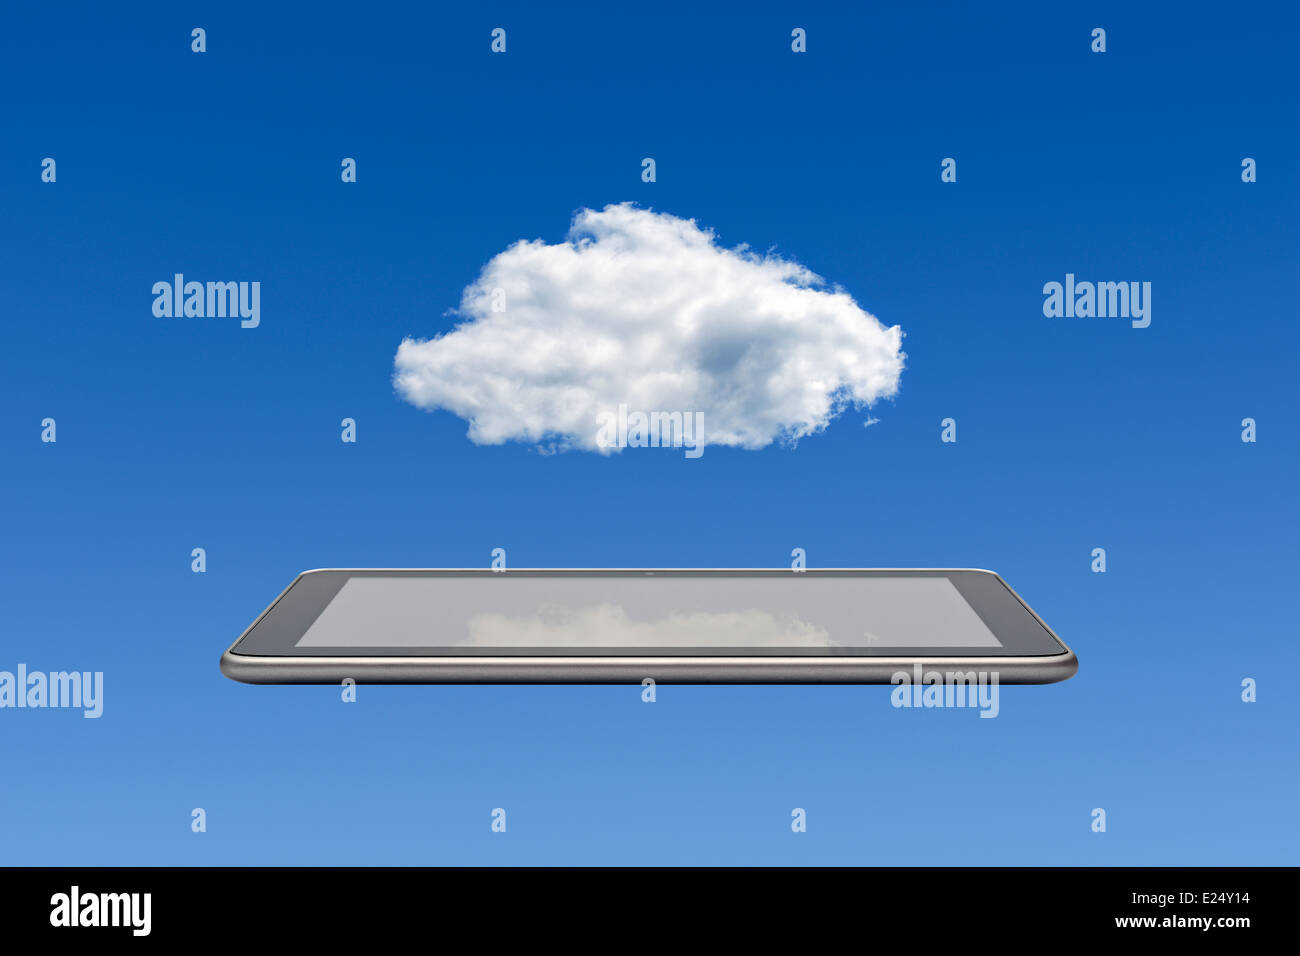 Cloud Computing. - Stock Image